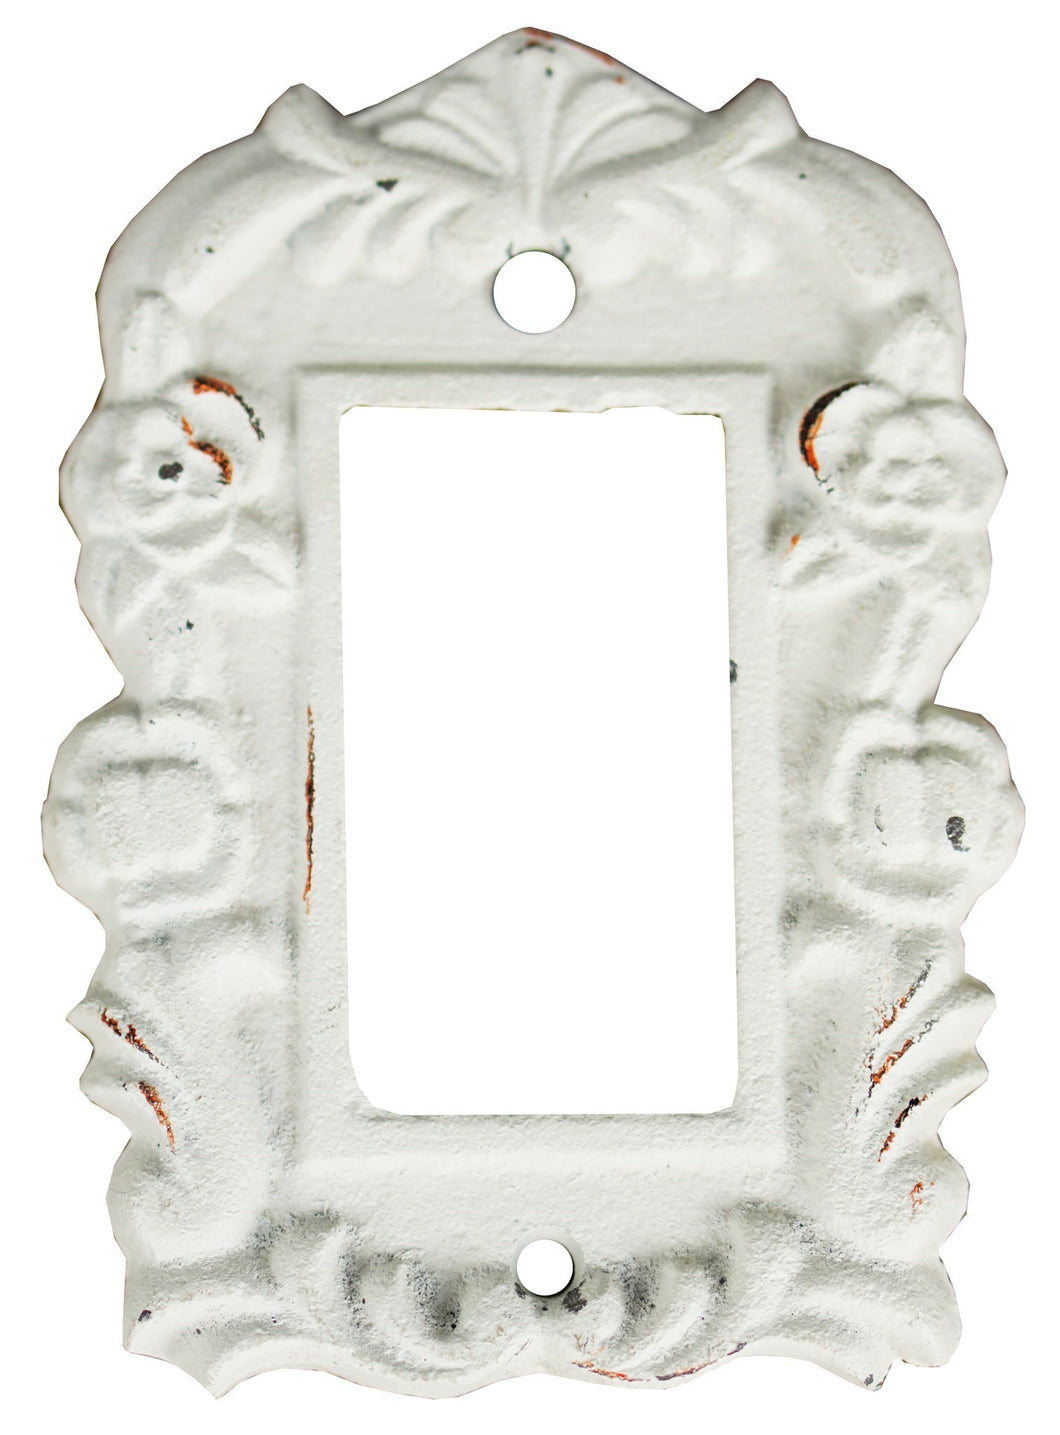 Tori Cast Iron Light Switch Cover, Single, Antique White 3.8x5.4inch